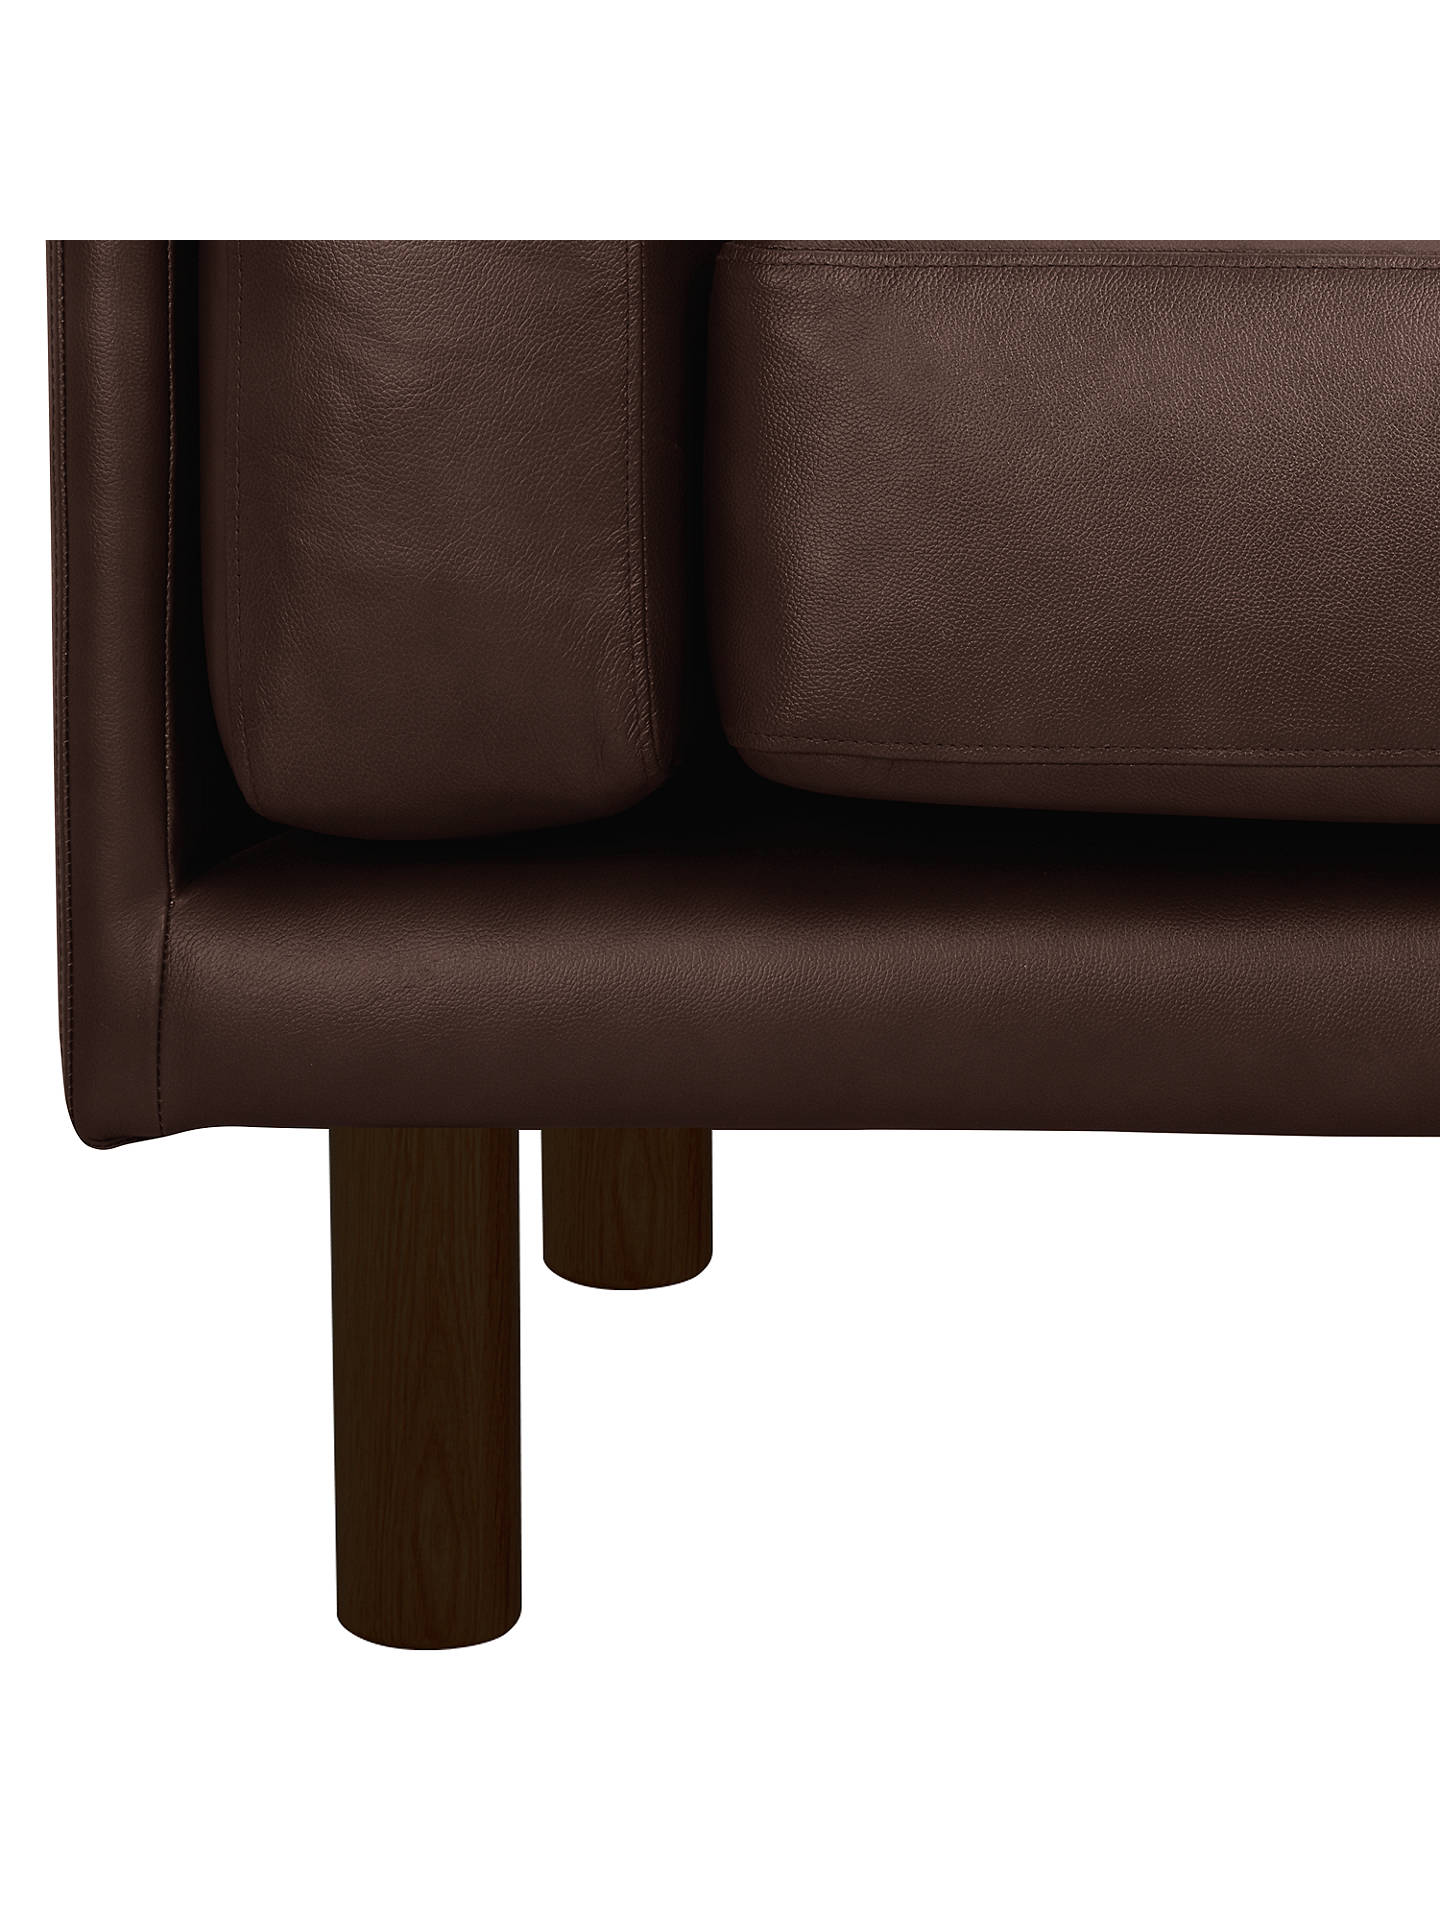 Buy Design Project by John Lewis No.002 Large 3 Seater Leather Sofa, Dark Leg, Nature Brown Online at johnlewis.com